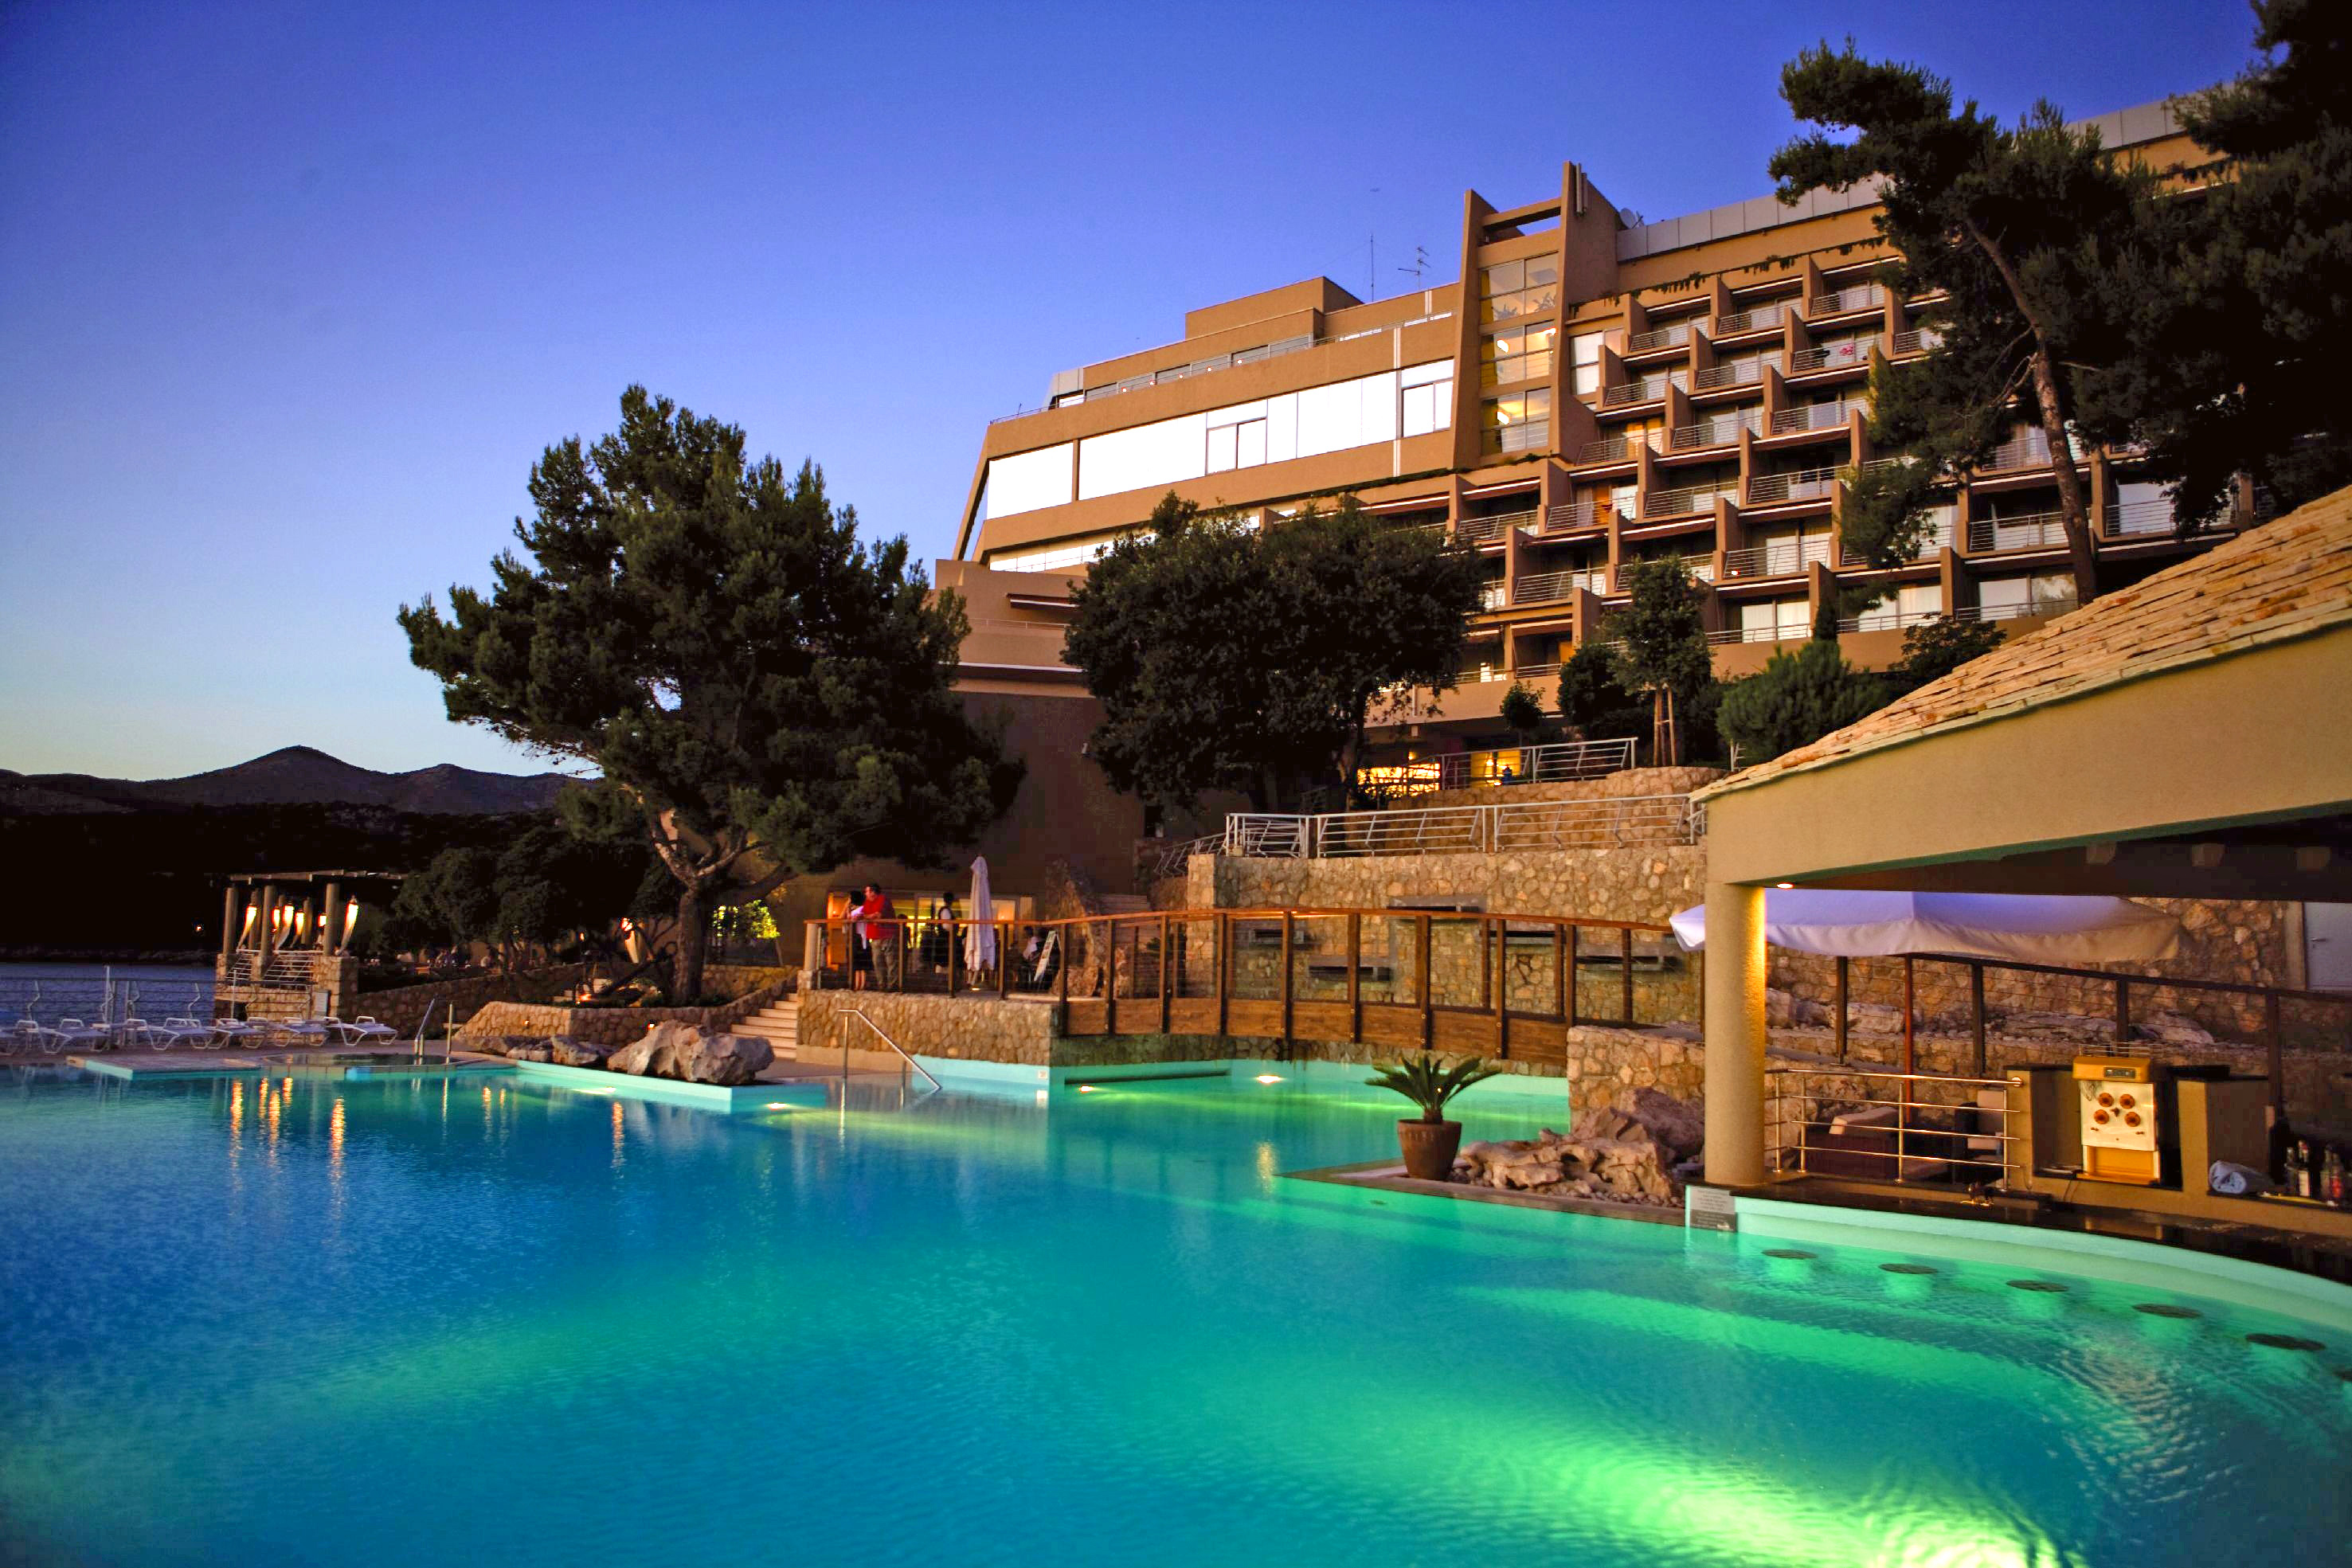 Top 10 adriatic luxury resorts for meetings kongres for Top luxury hotels